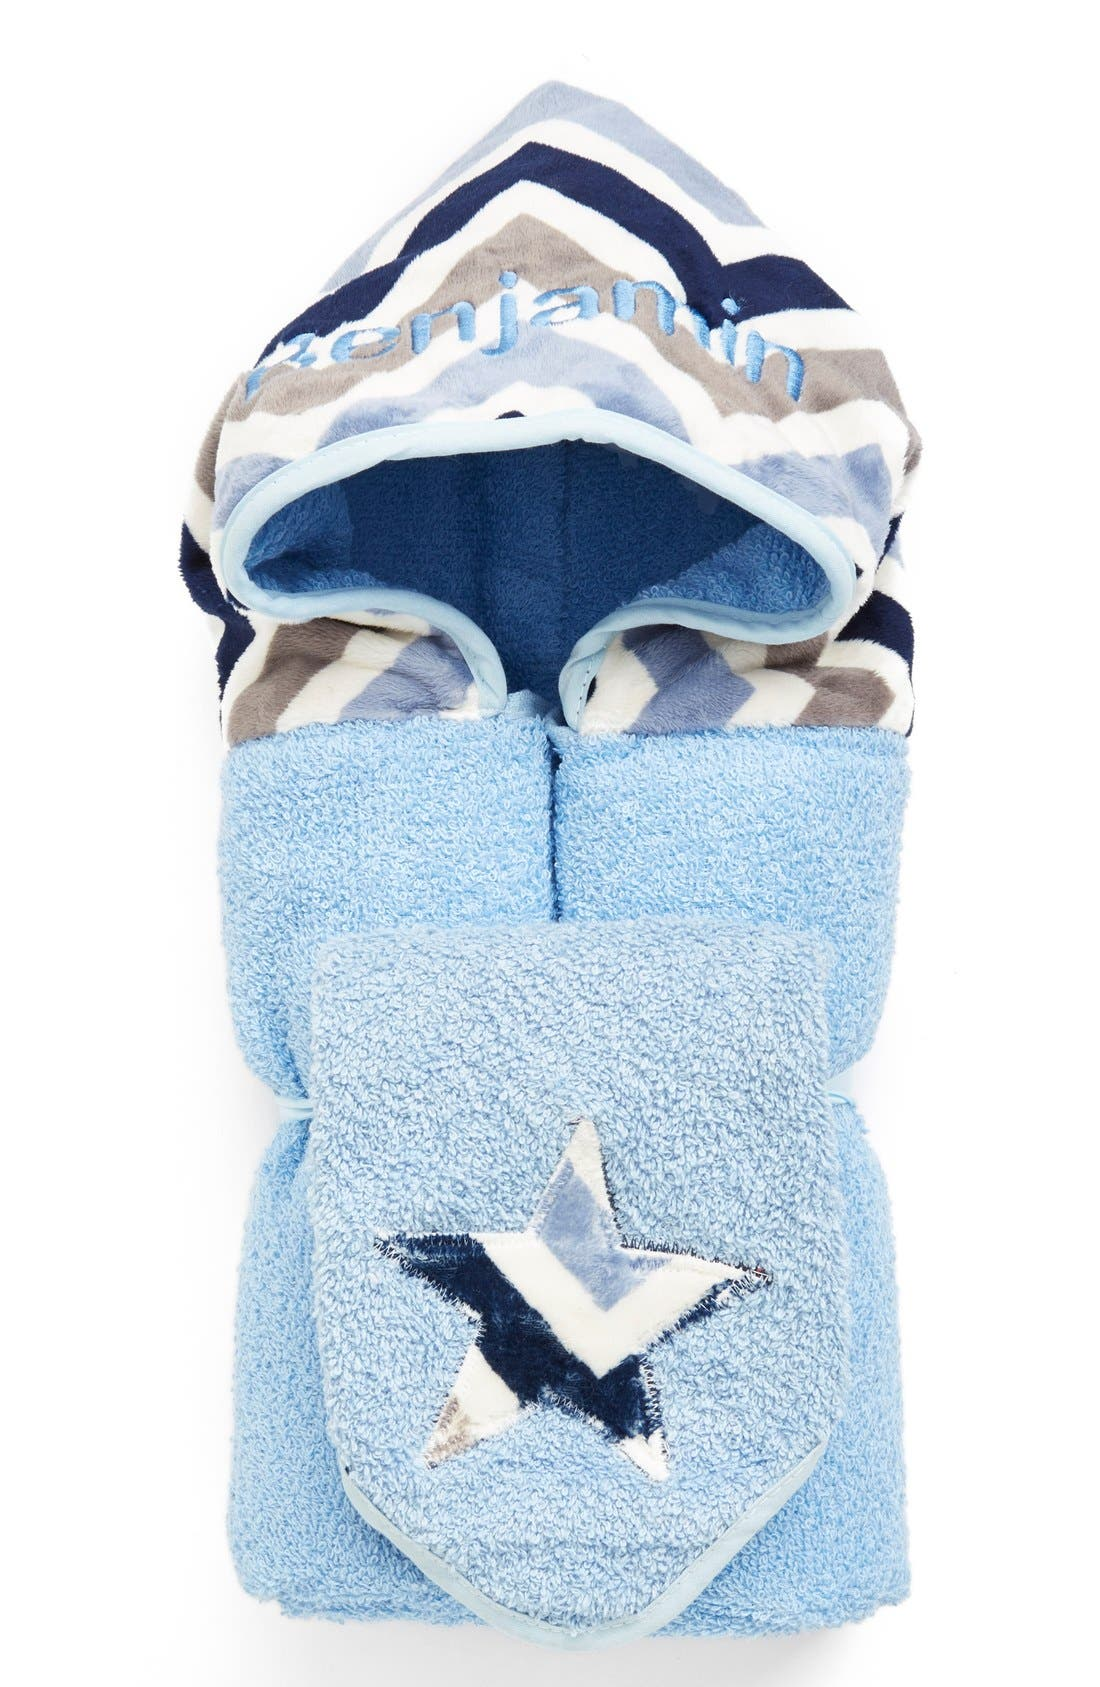 Alternate Image 1 Selected - Bibz N Thingz Personalized Hooded Towel (Baby Boys)